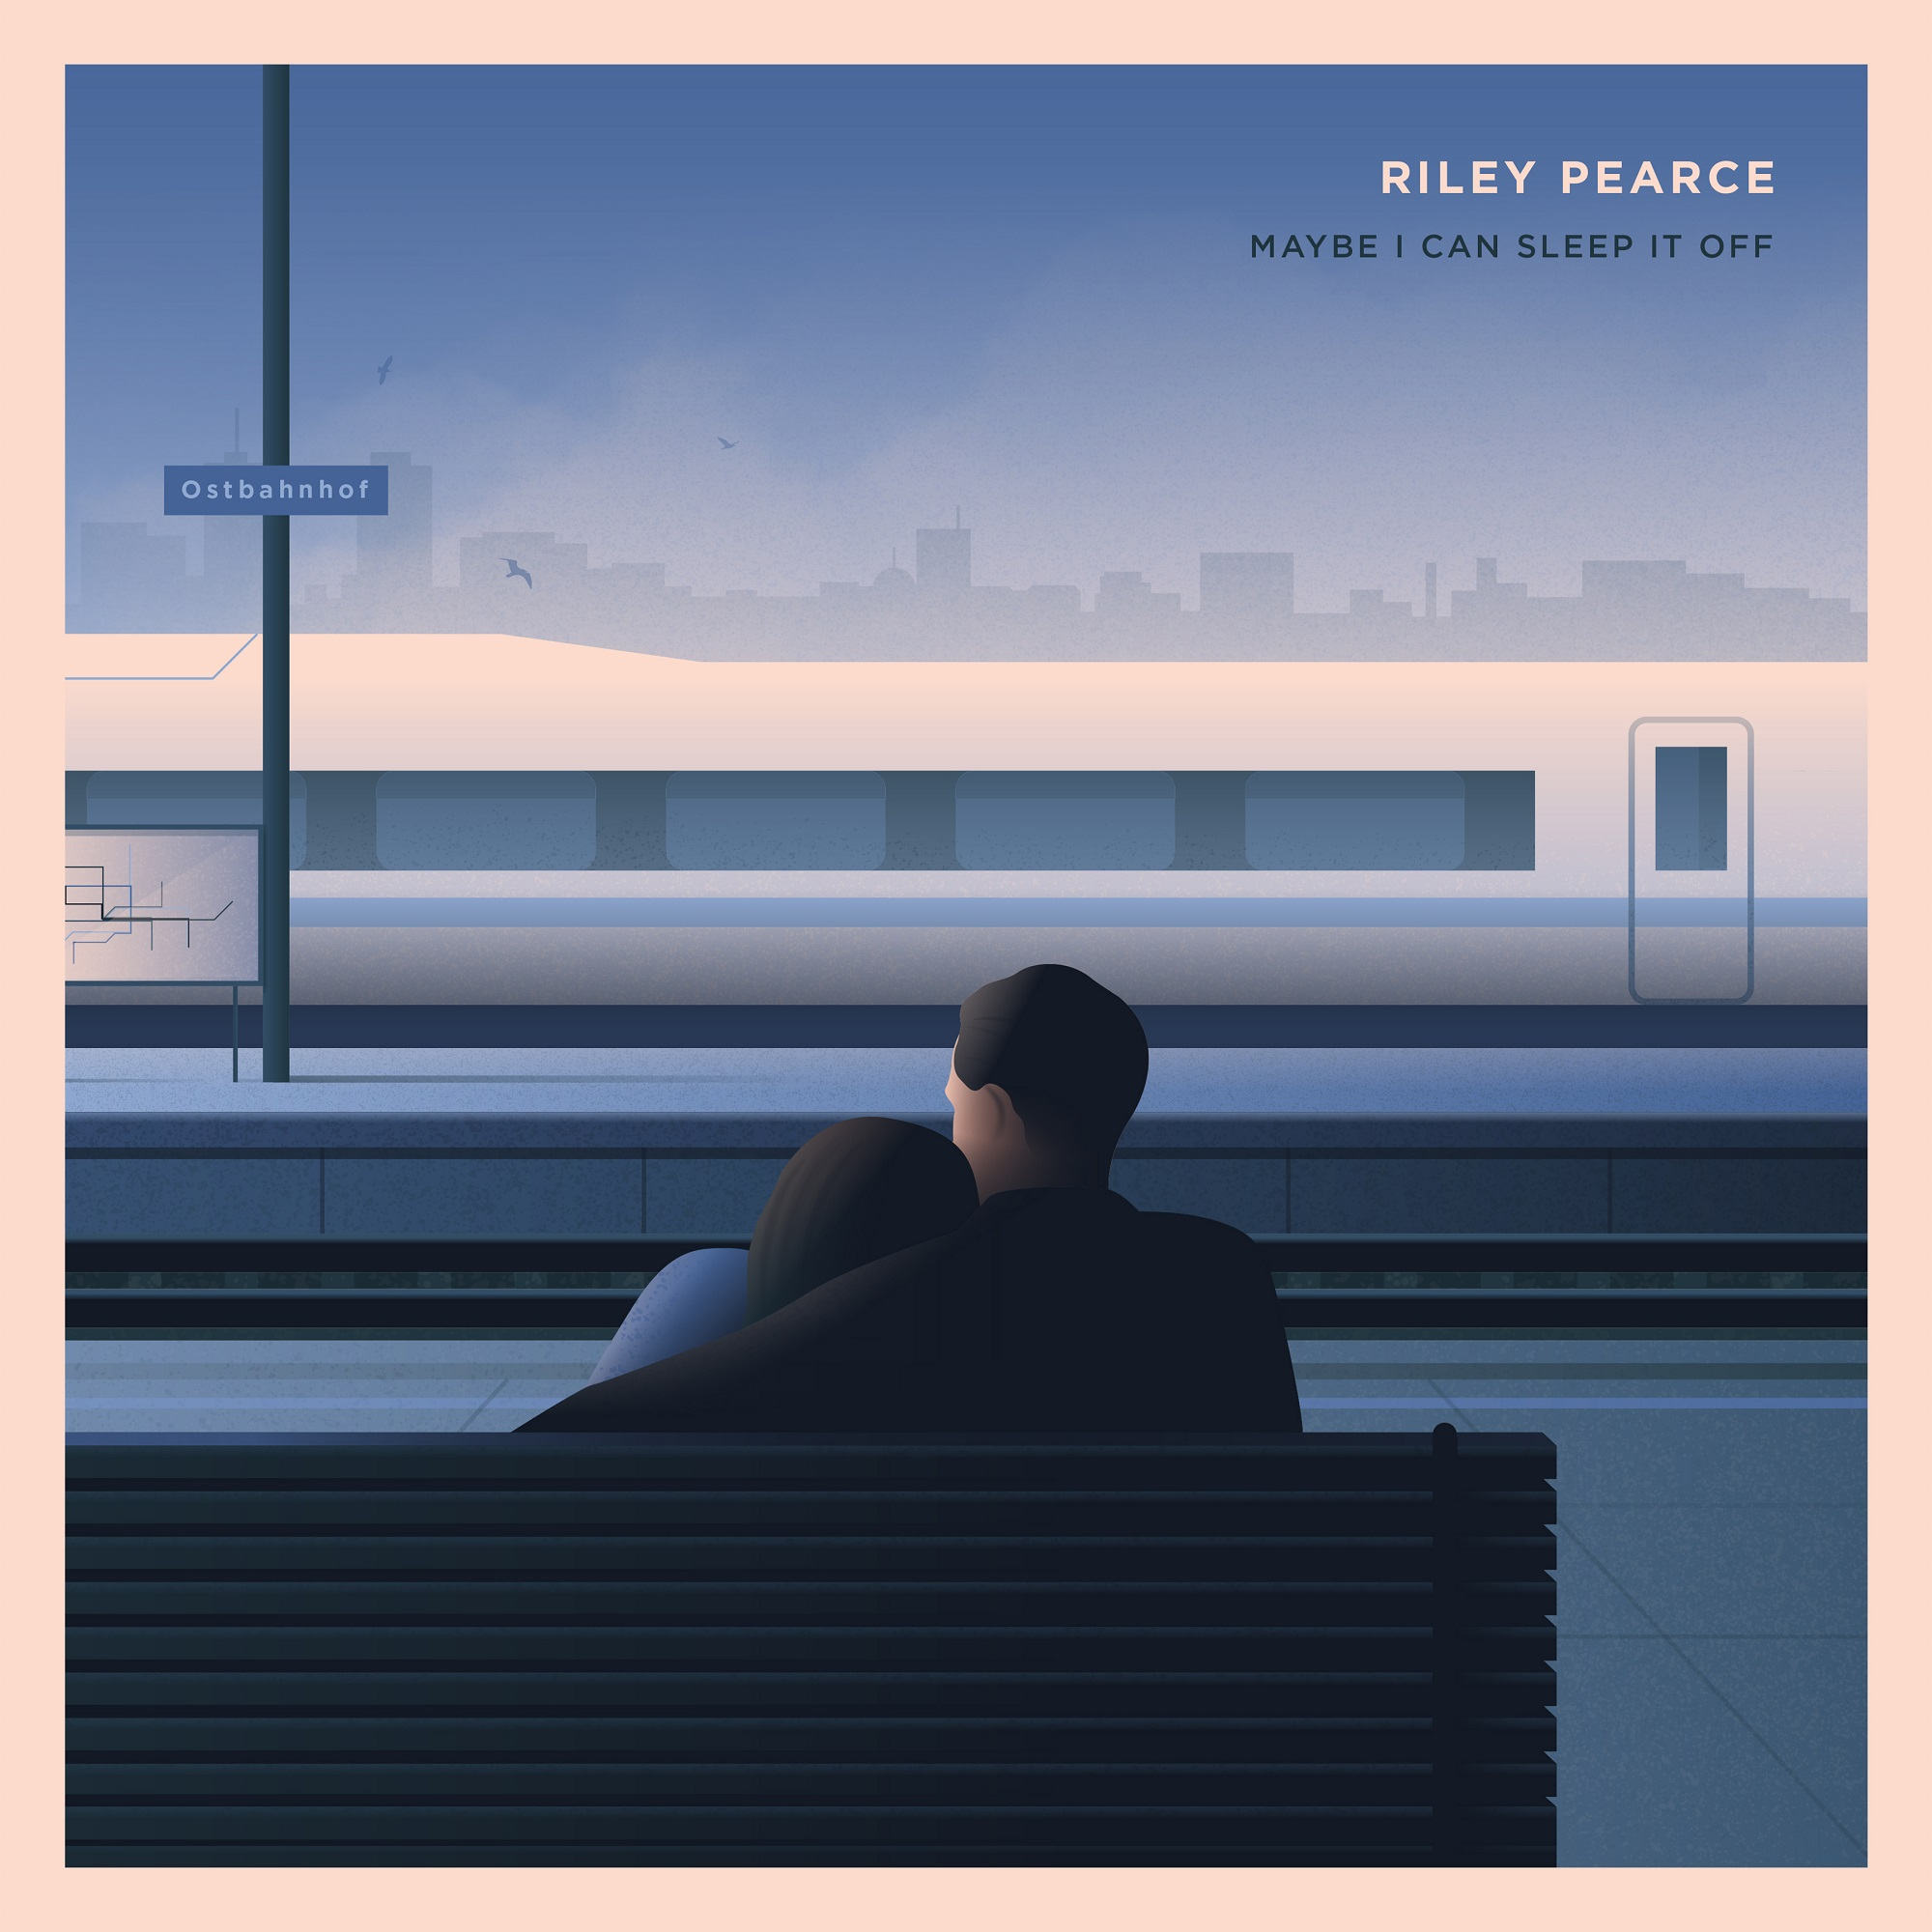 riley pearce maybe i can sleep it off cover